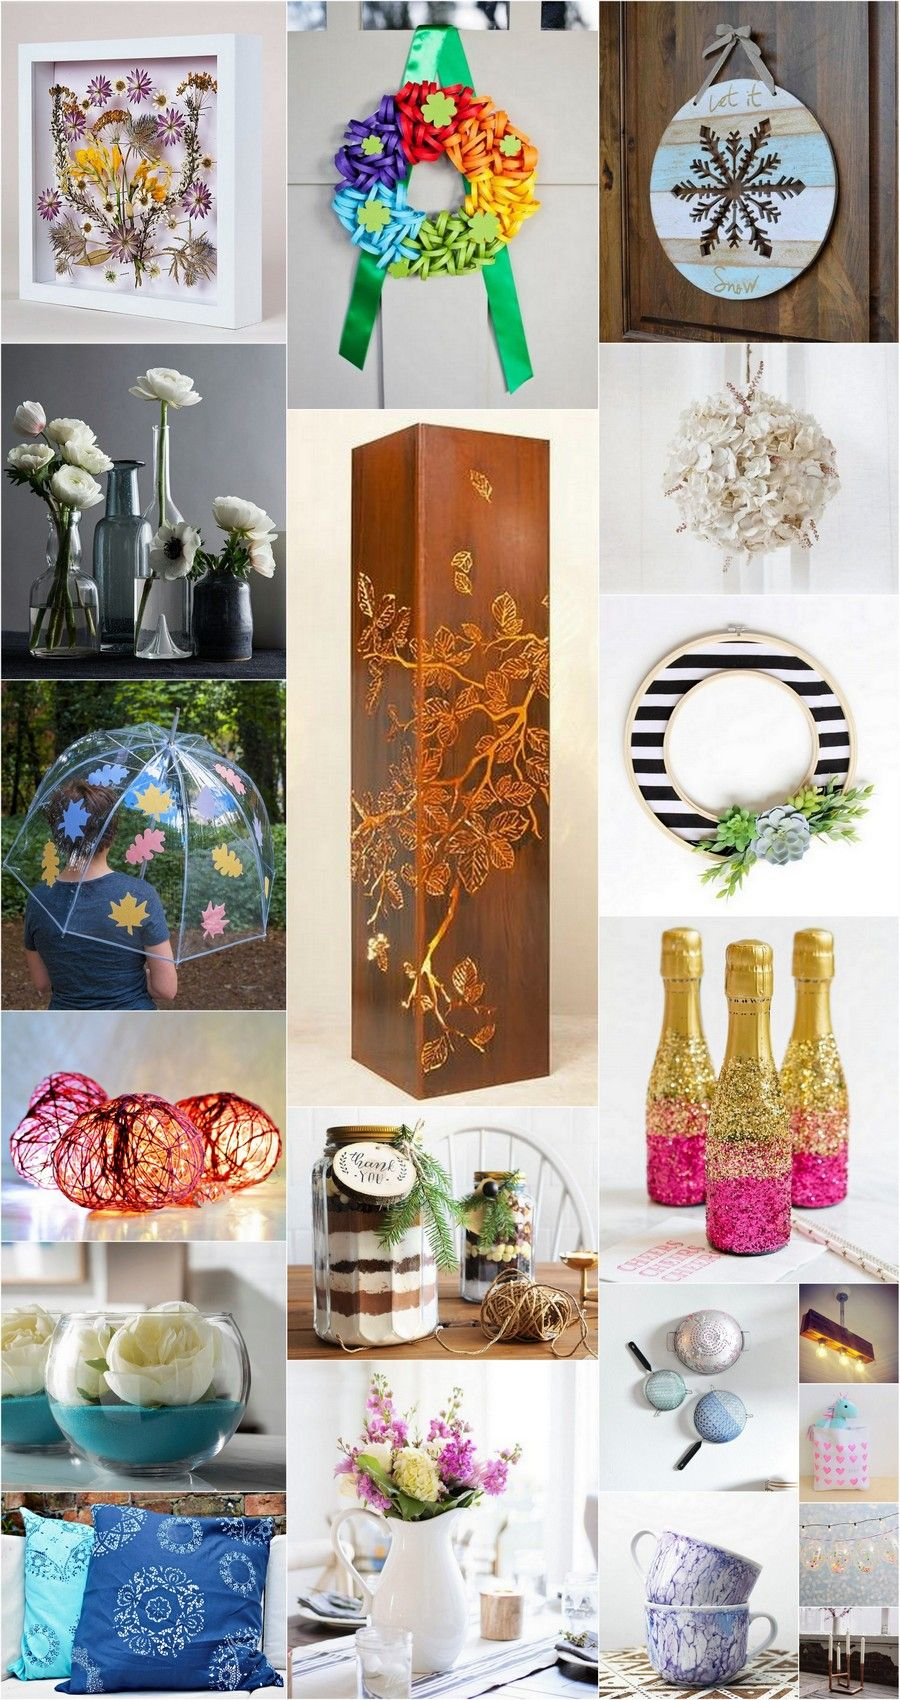 Amazing Art and Crafts ideas for Home